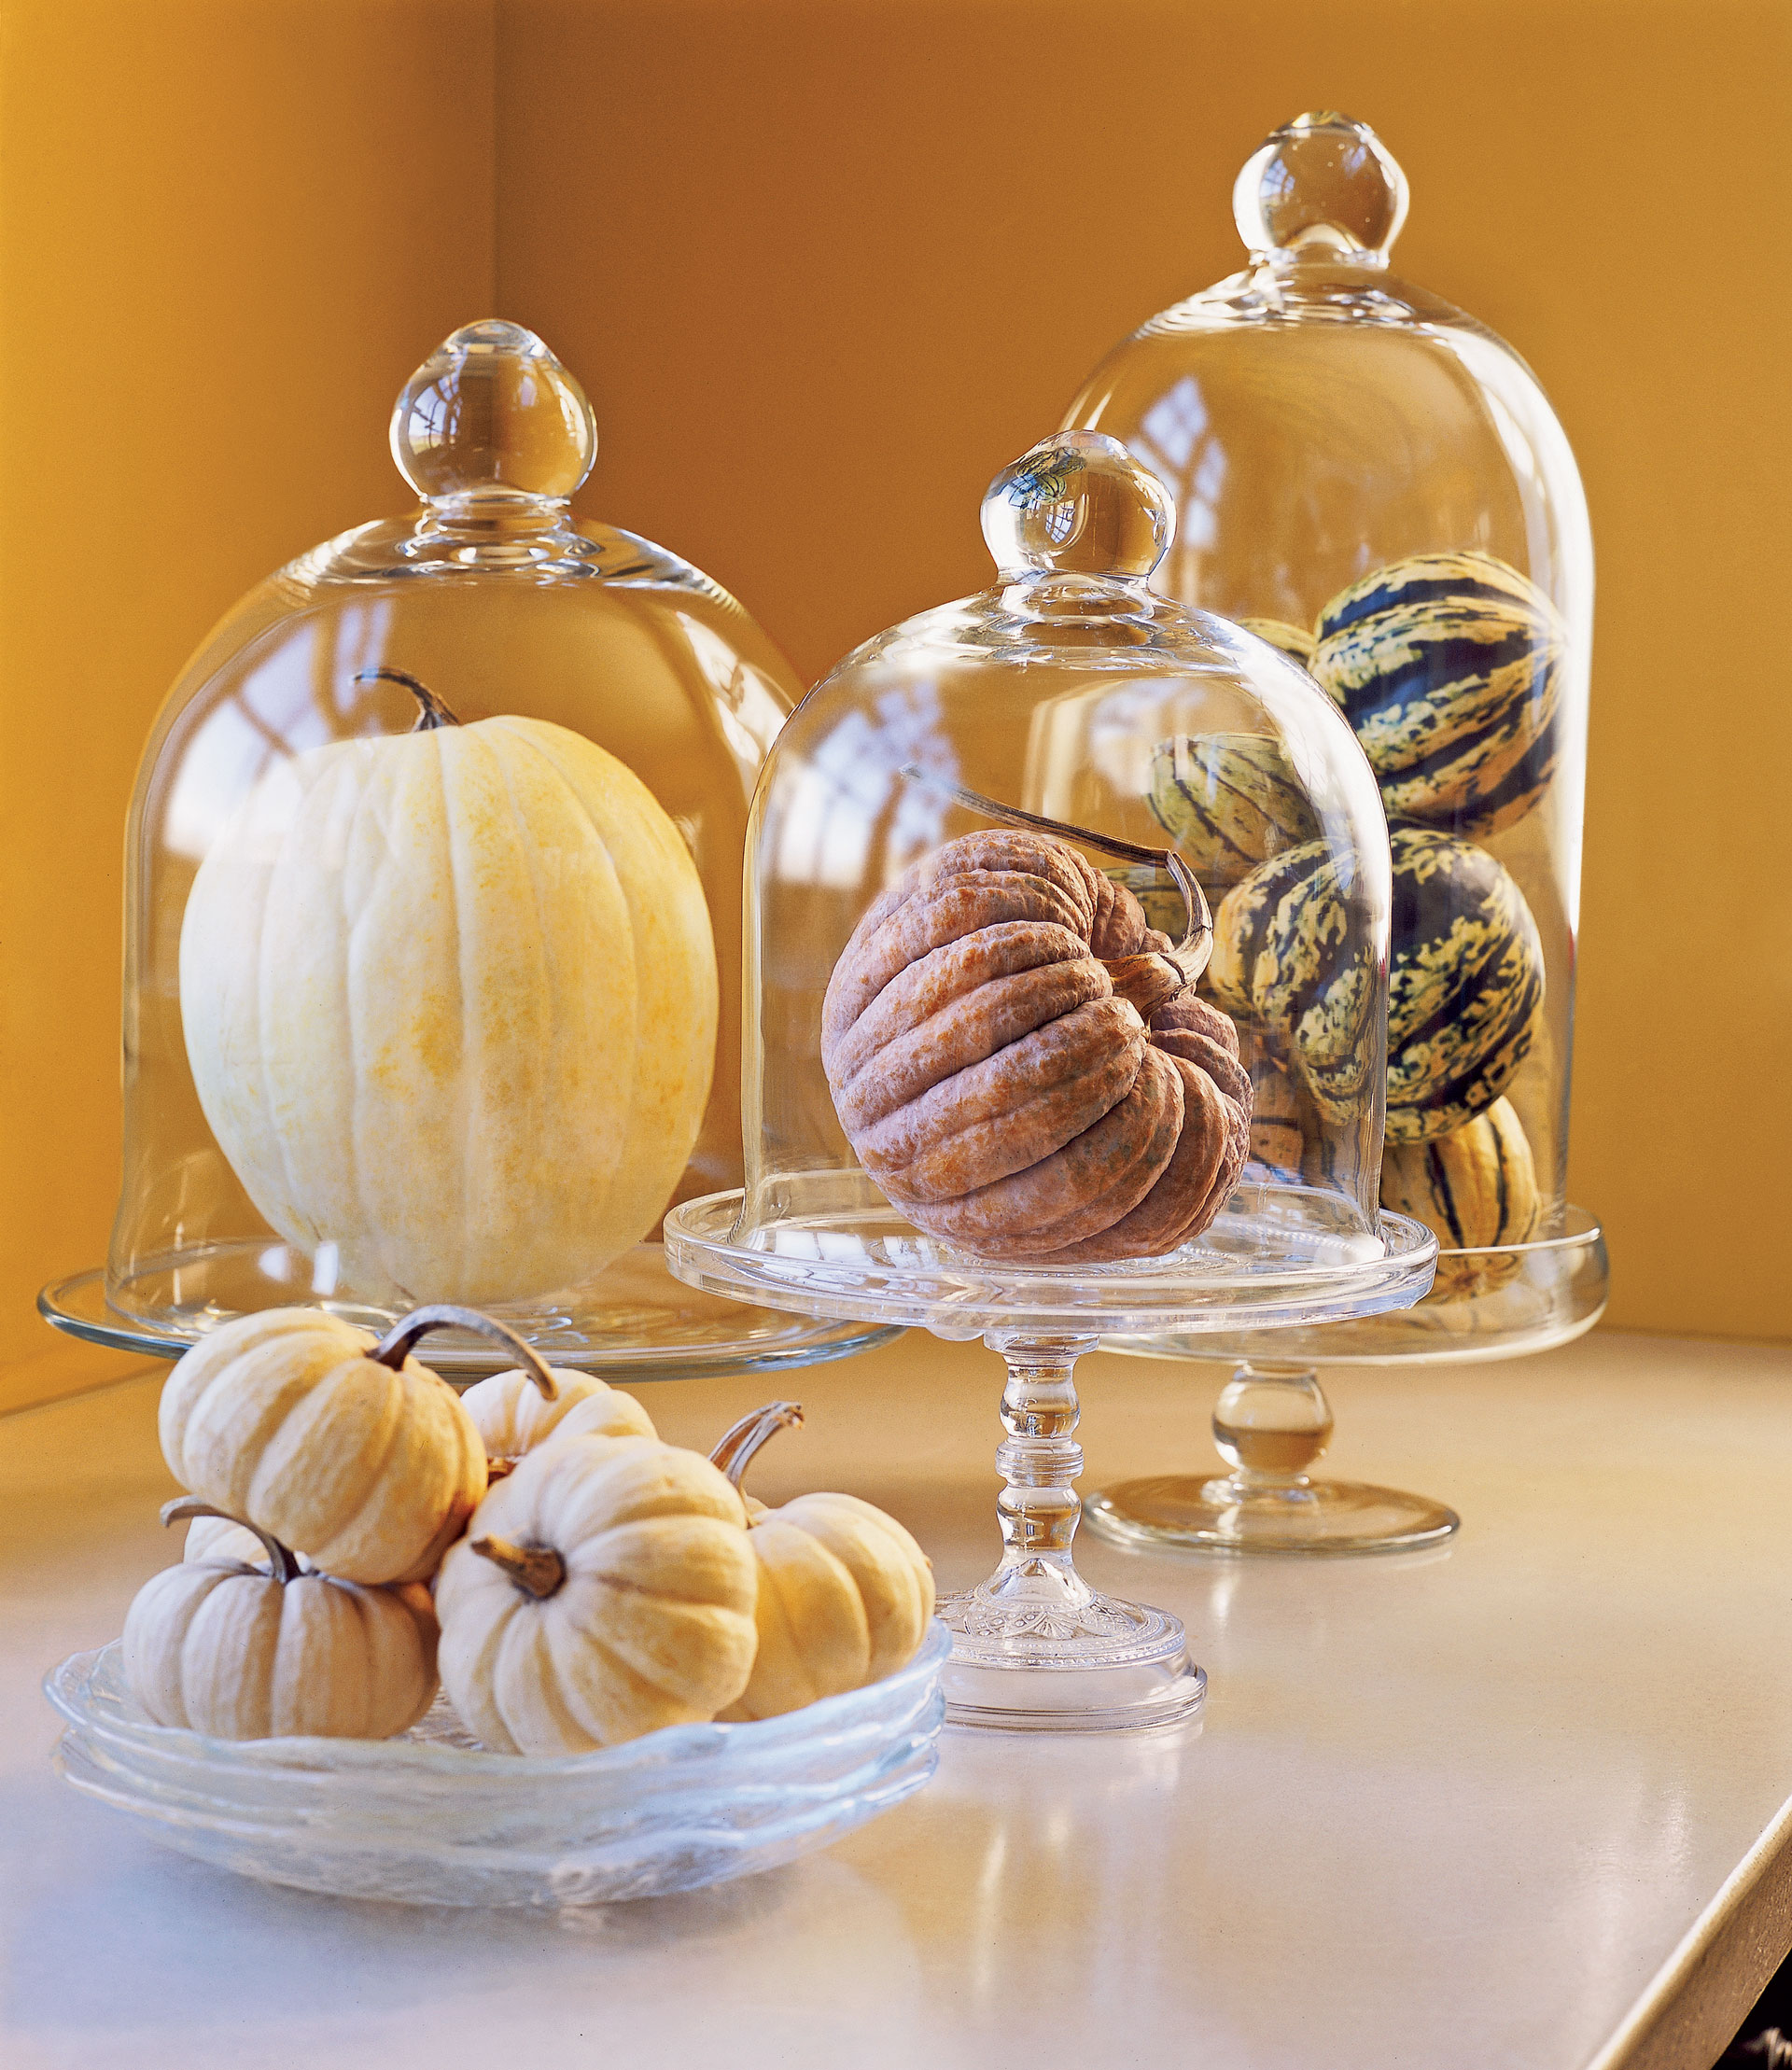 Decorating 47 easy fall decorating ideas - autumn decor tips to try